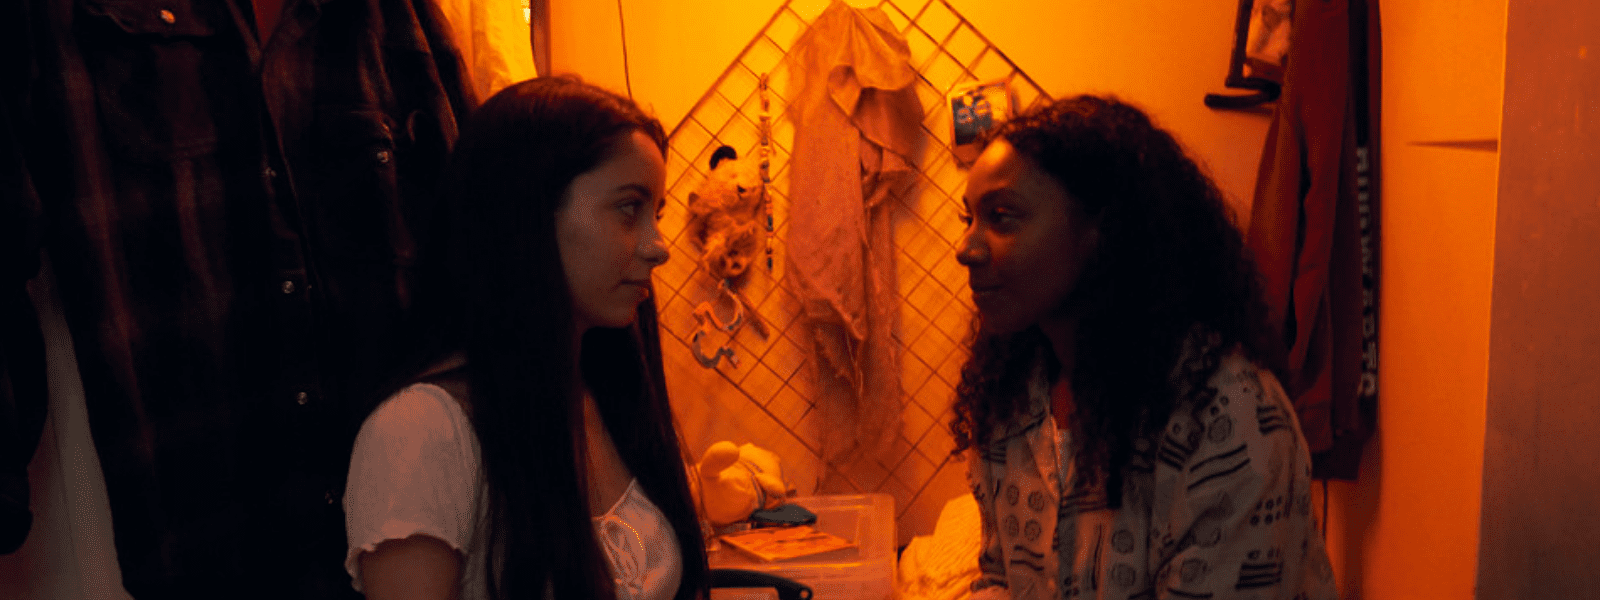 Two late teenage women, one Black with long curly black hair and the other white with long straight black hair, sit looking meaningfully at each other in a warmly lit closet.